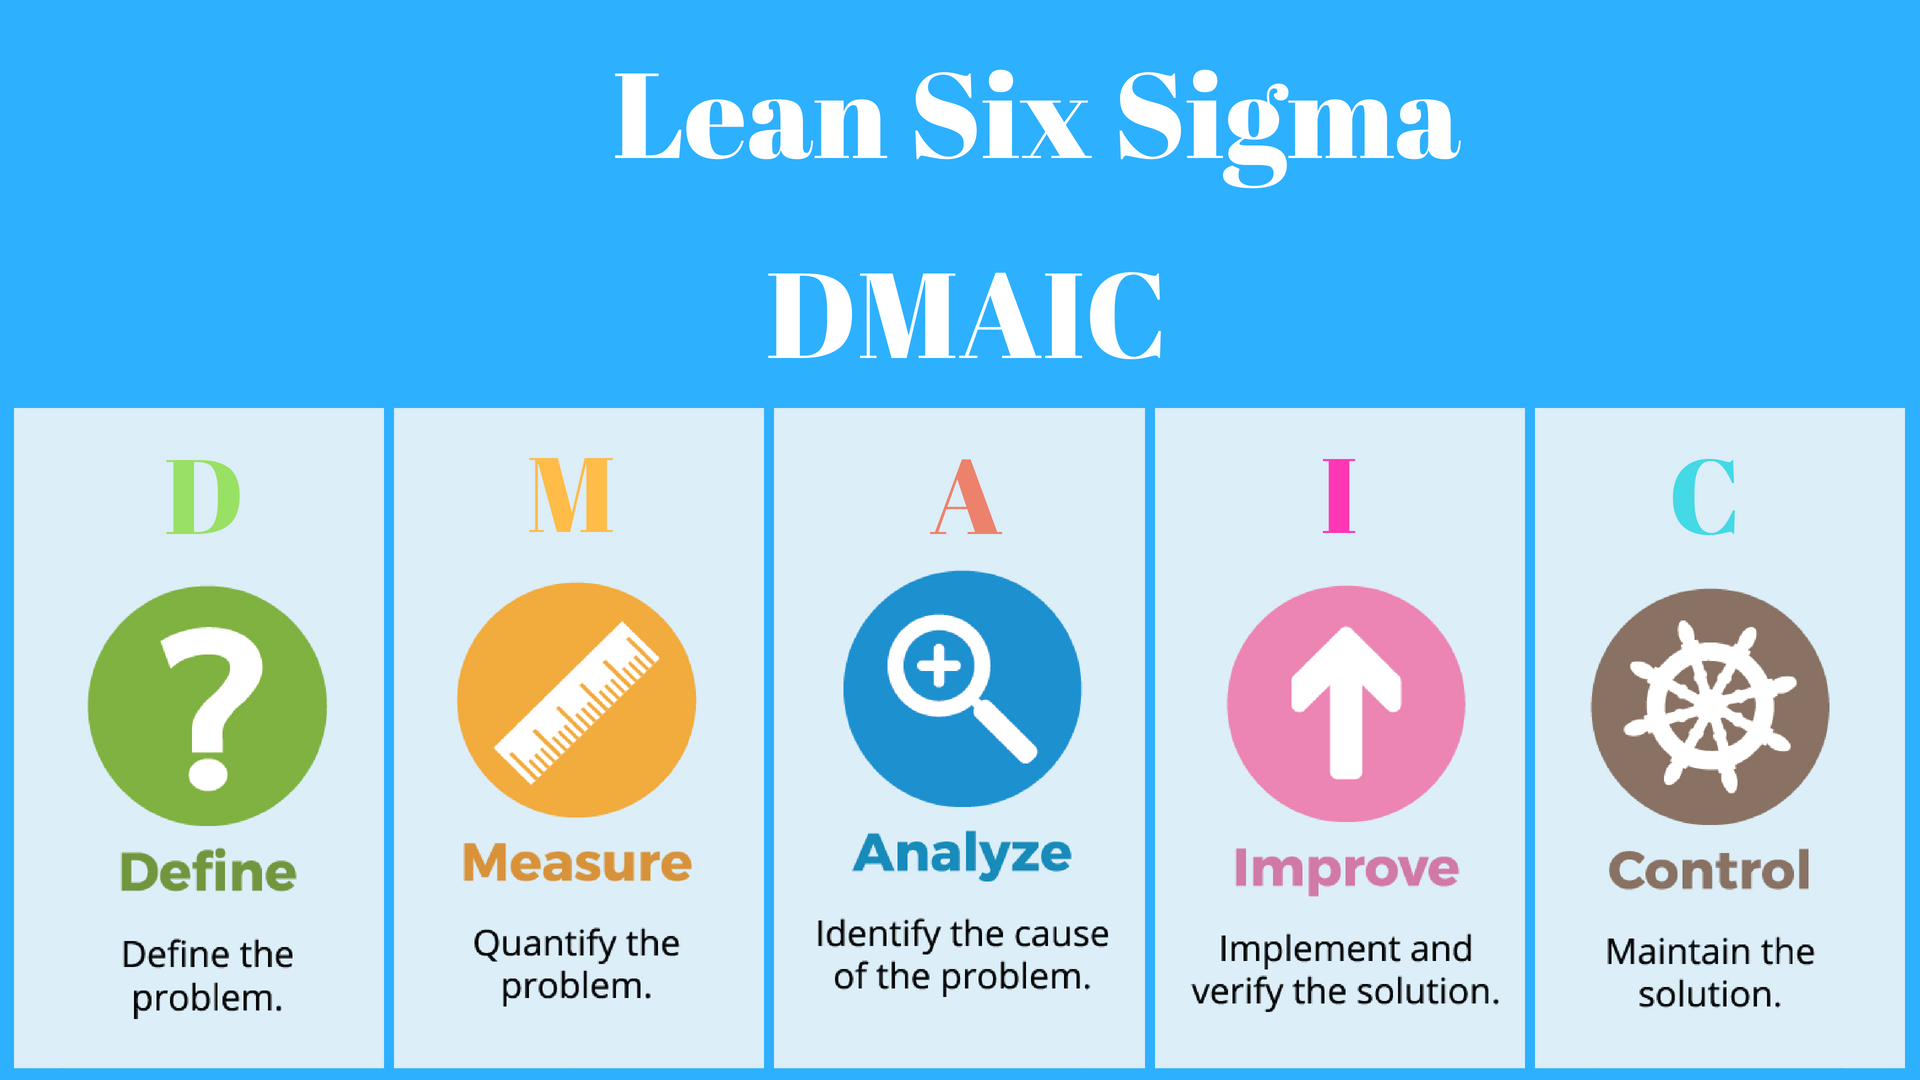 dmaic approach in lean six sigma msys training